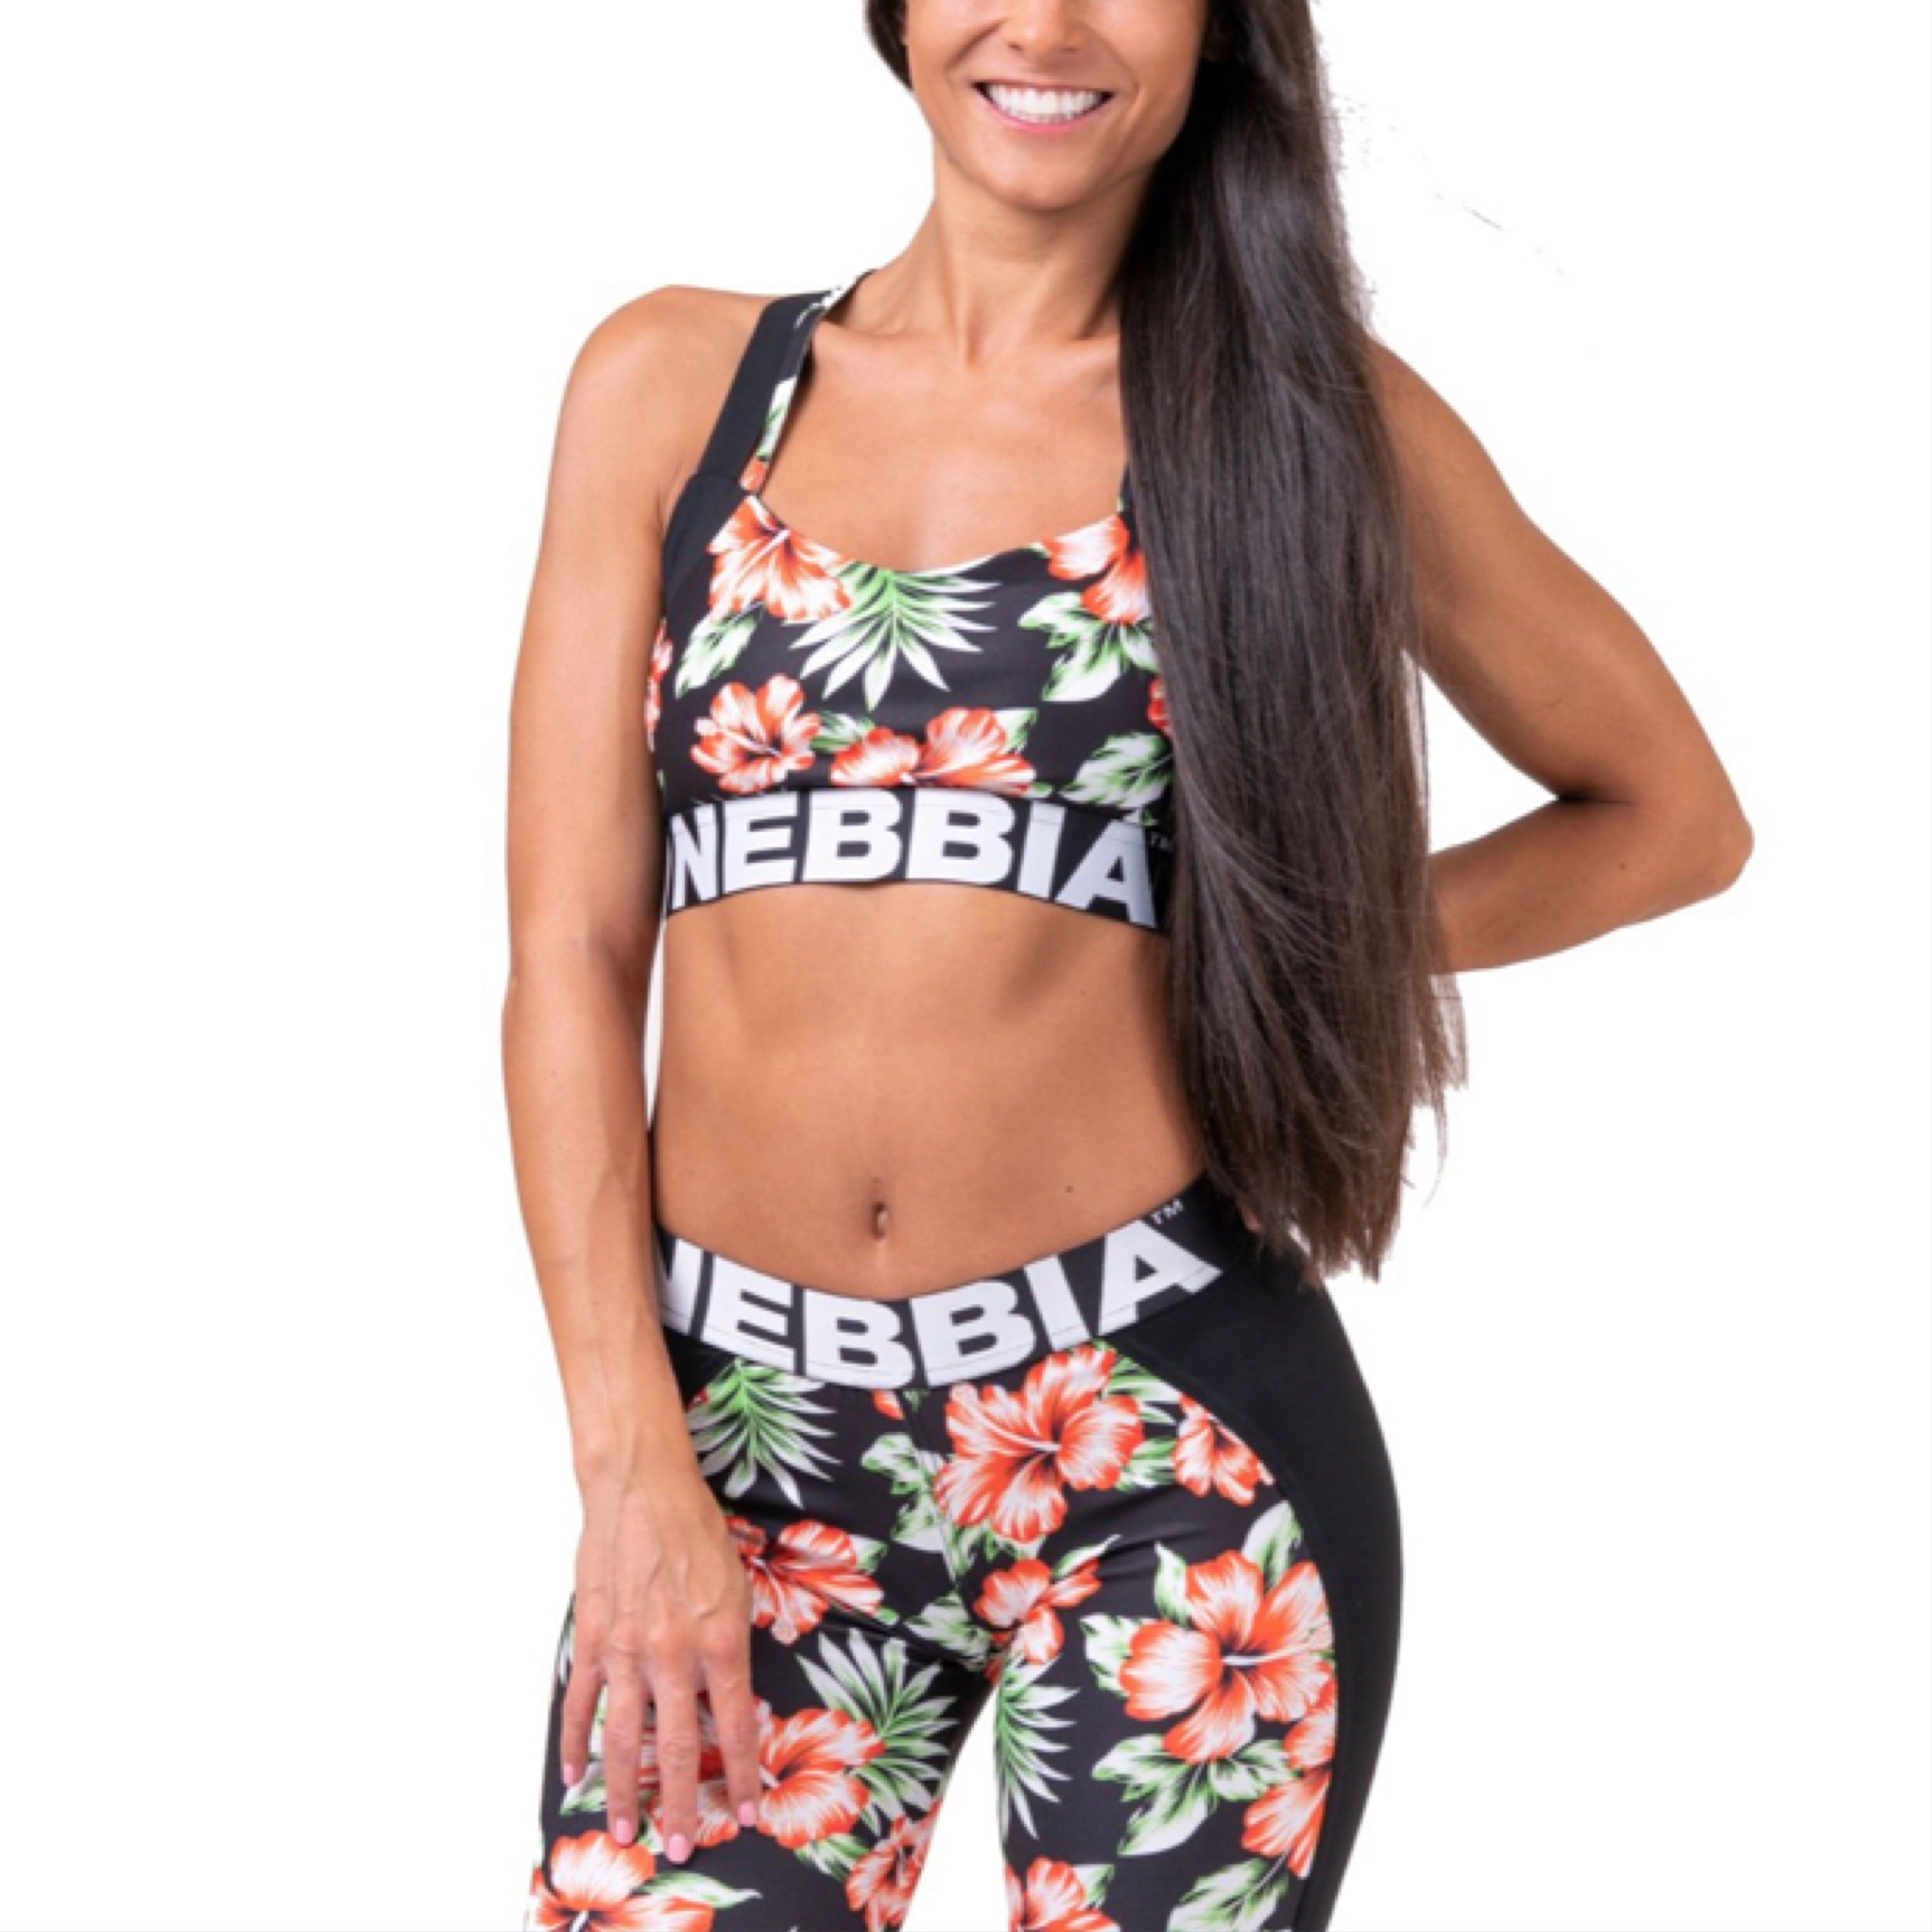 shop nebbia clothing